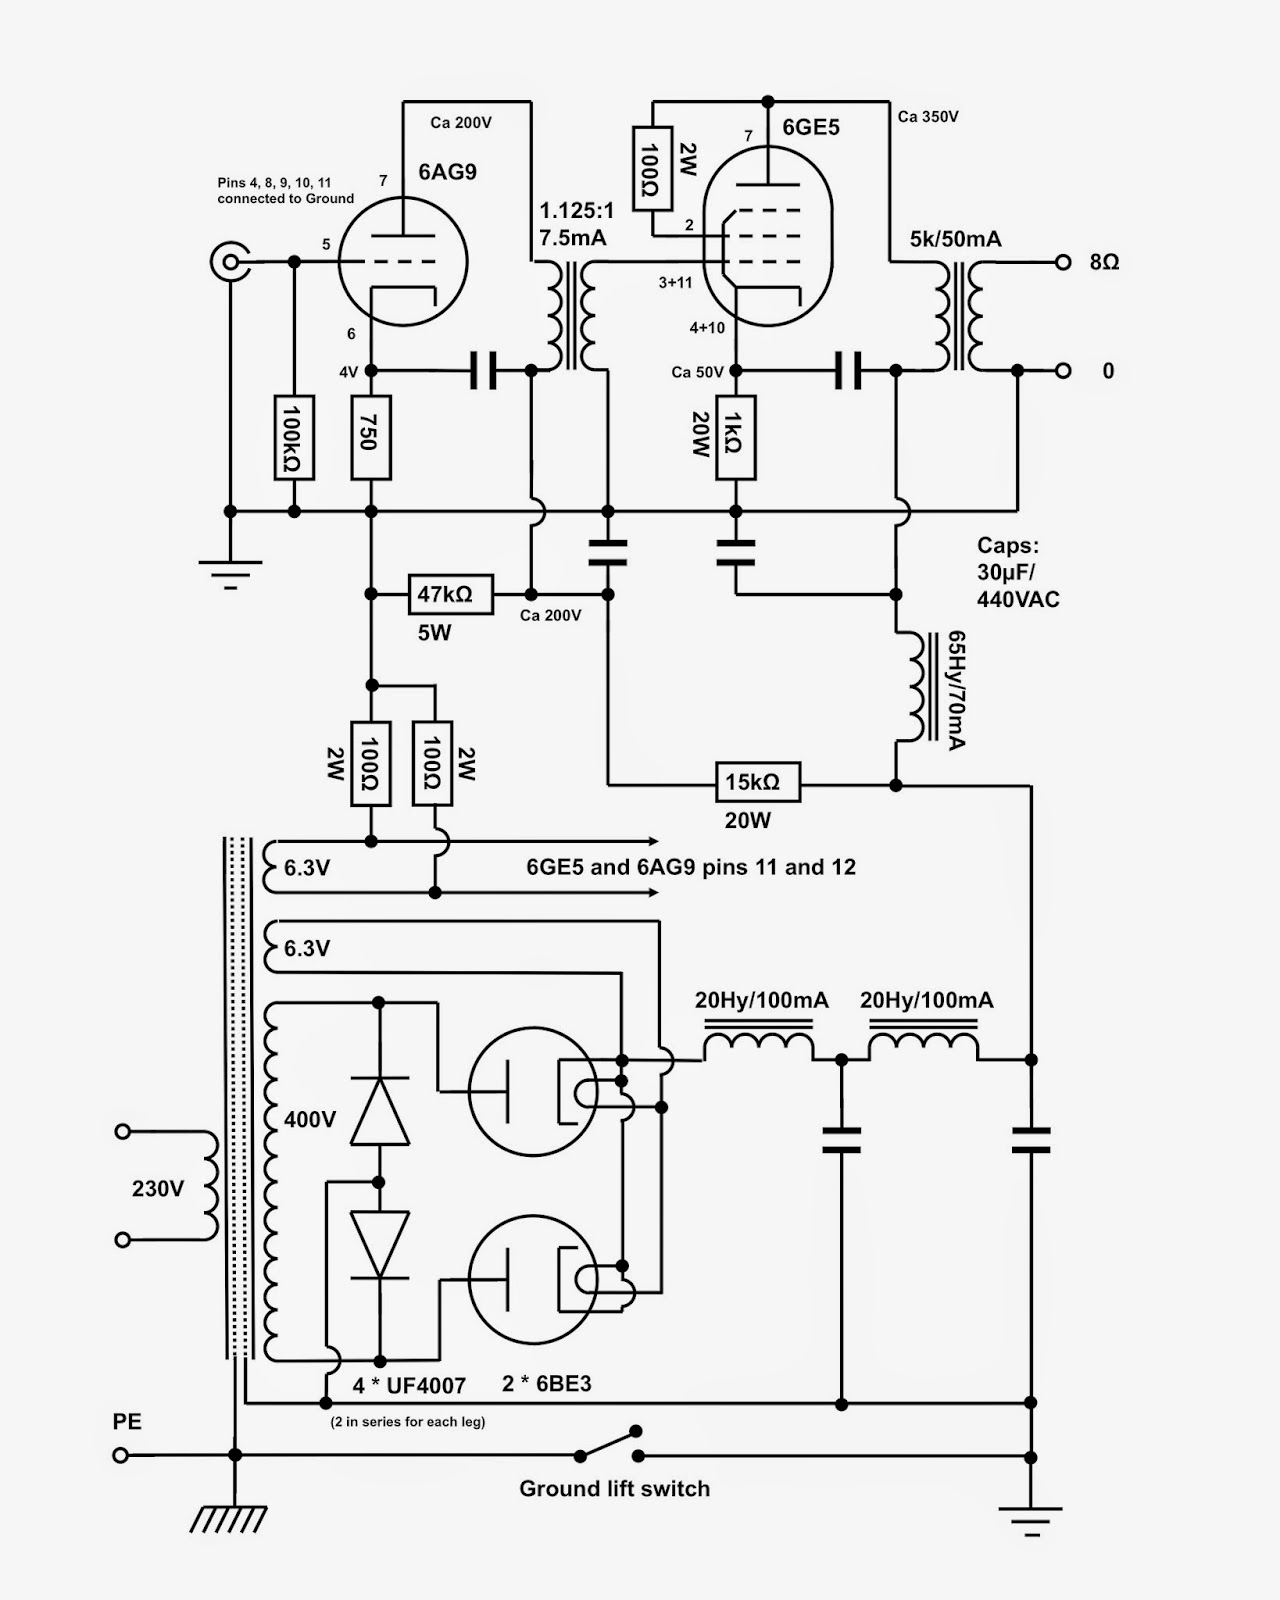 lifier Ic 18w Using Ha13118 likewise e2 80 8b2n2222 Transistor Circuit Diagrams moreover Ffi pre in addition Bi Wiring Speakers Exploration Benefits in addition Ecg Circuit. on amplifier output diagram